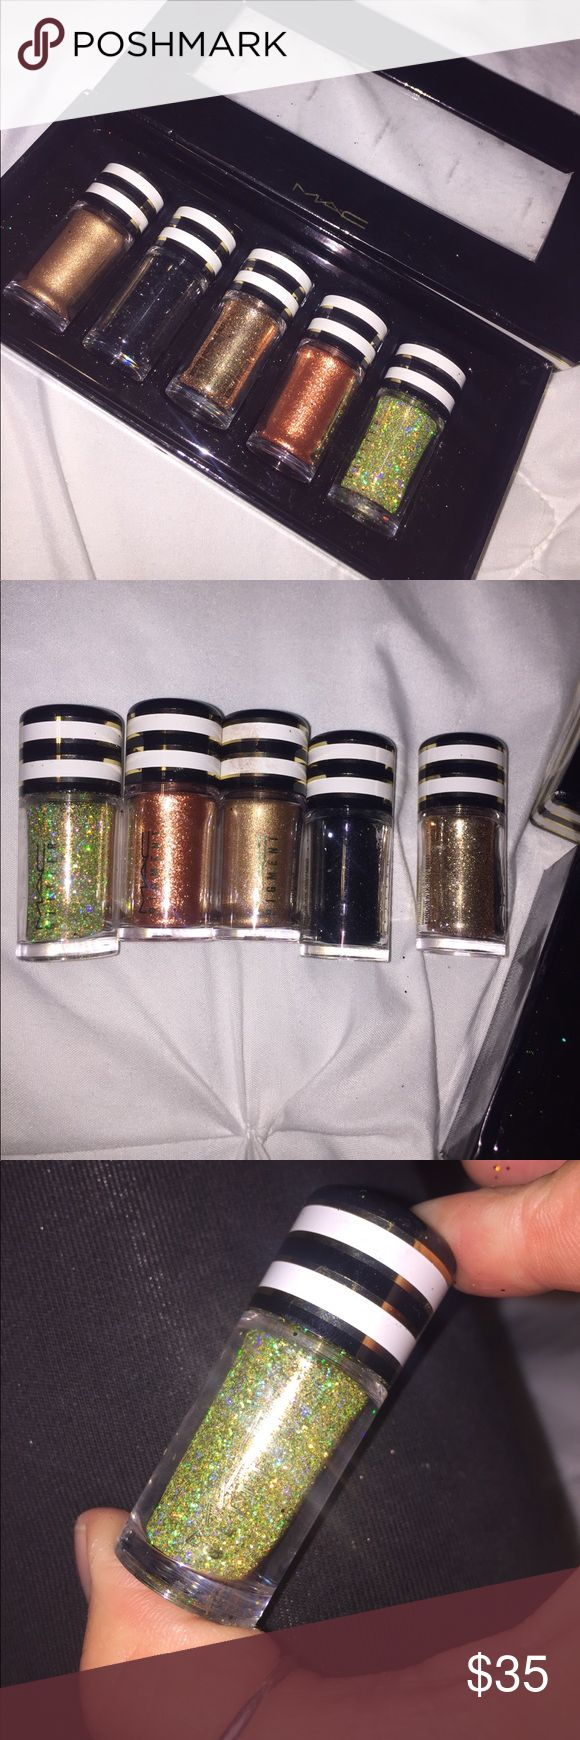 Limited Edition MAC Holiday Glitter Pigment Set✨✨ Three glitter pigments and two shimmer pigments. Colors are : 3D Gold glitter  , Copper sparkle , Gold, Museum Bronze, and Black ✨✨ only used the 3D gold glitter once. All others are un used. Pigments this size usually $10 each. Great price for the set ! MAC Cosmetics Makeup Eyeshadow